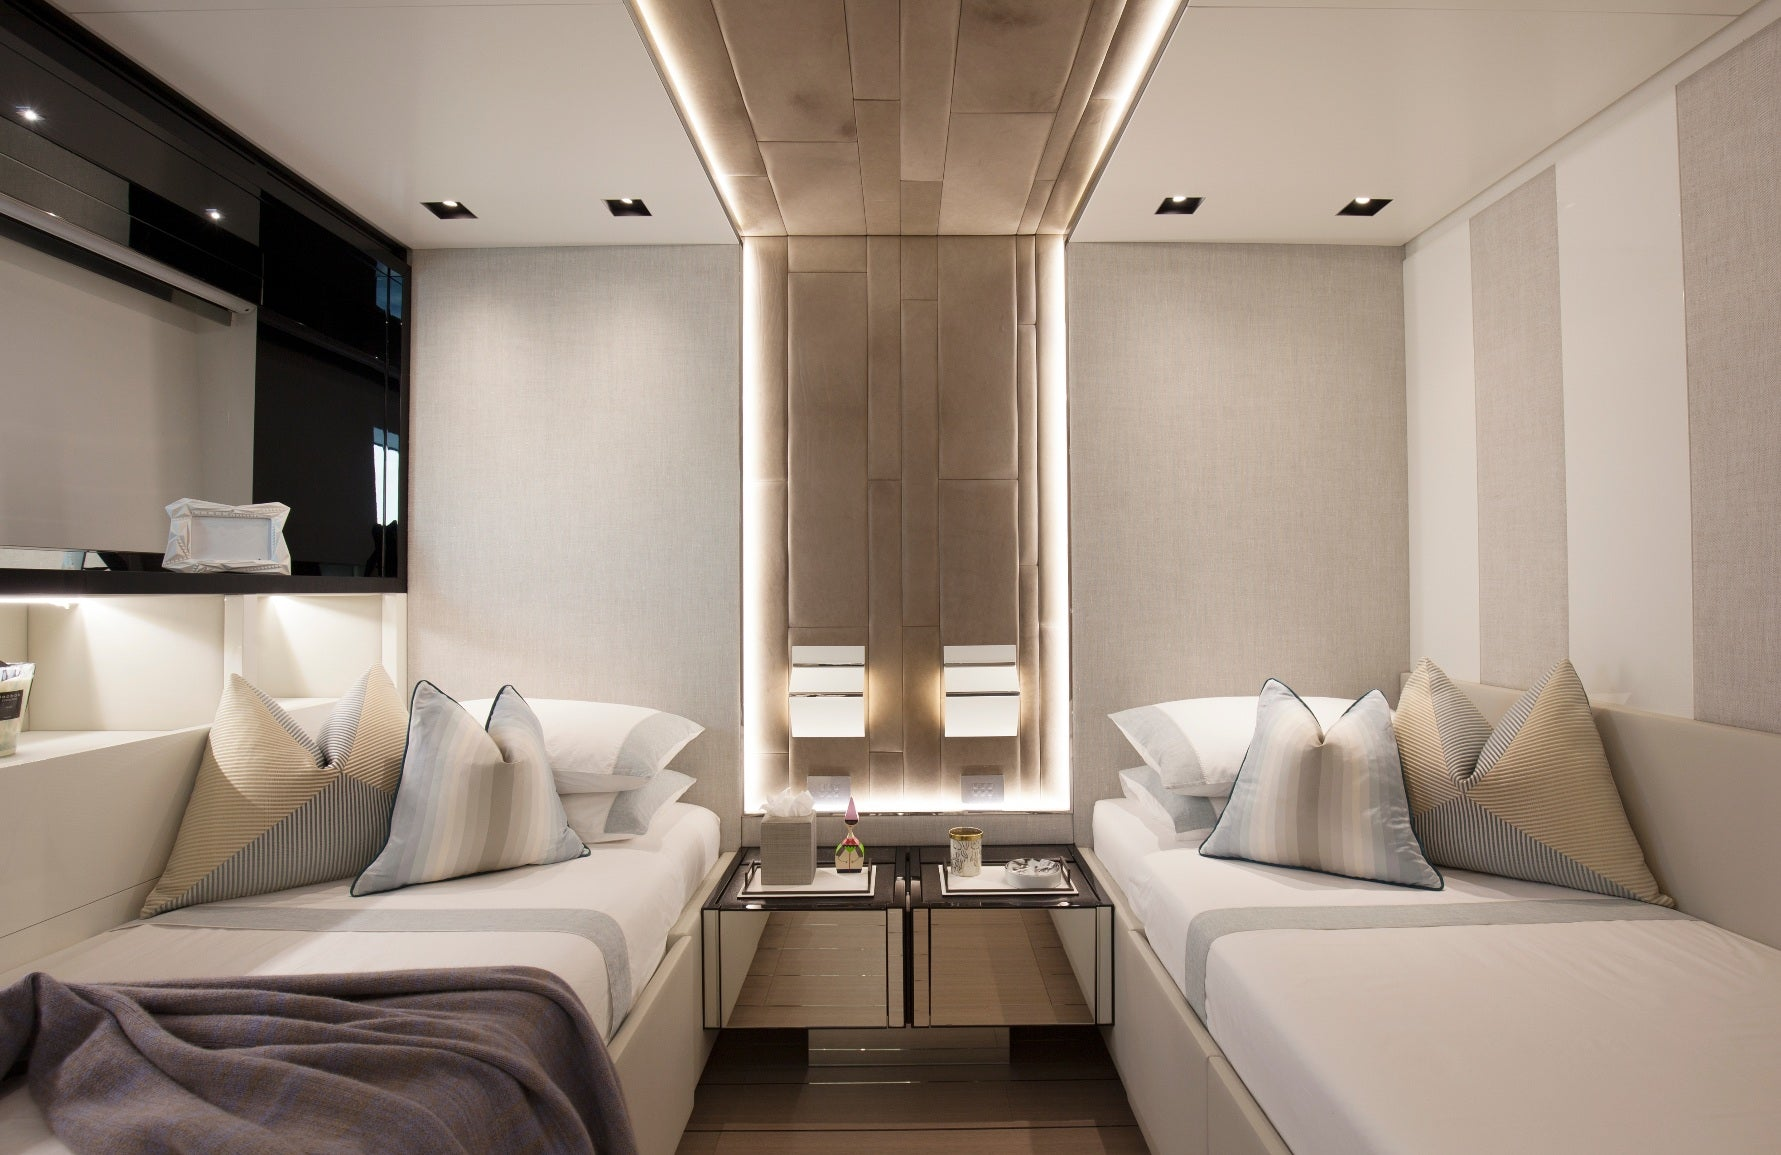 Luxury Superyacht Interior Design Ideas - Twin Bedroom Cabin Yacht Interior - LuxDeco.com Style Guide